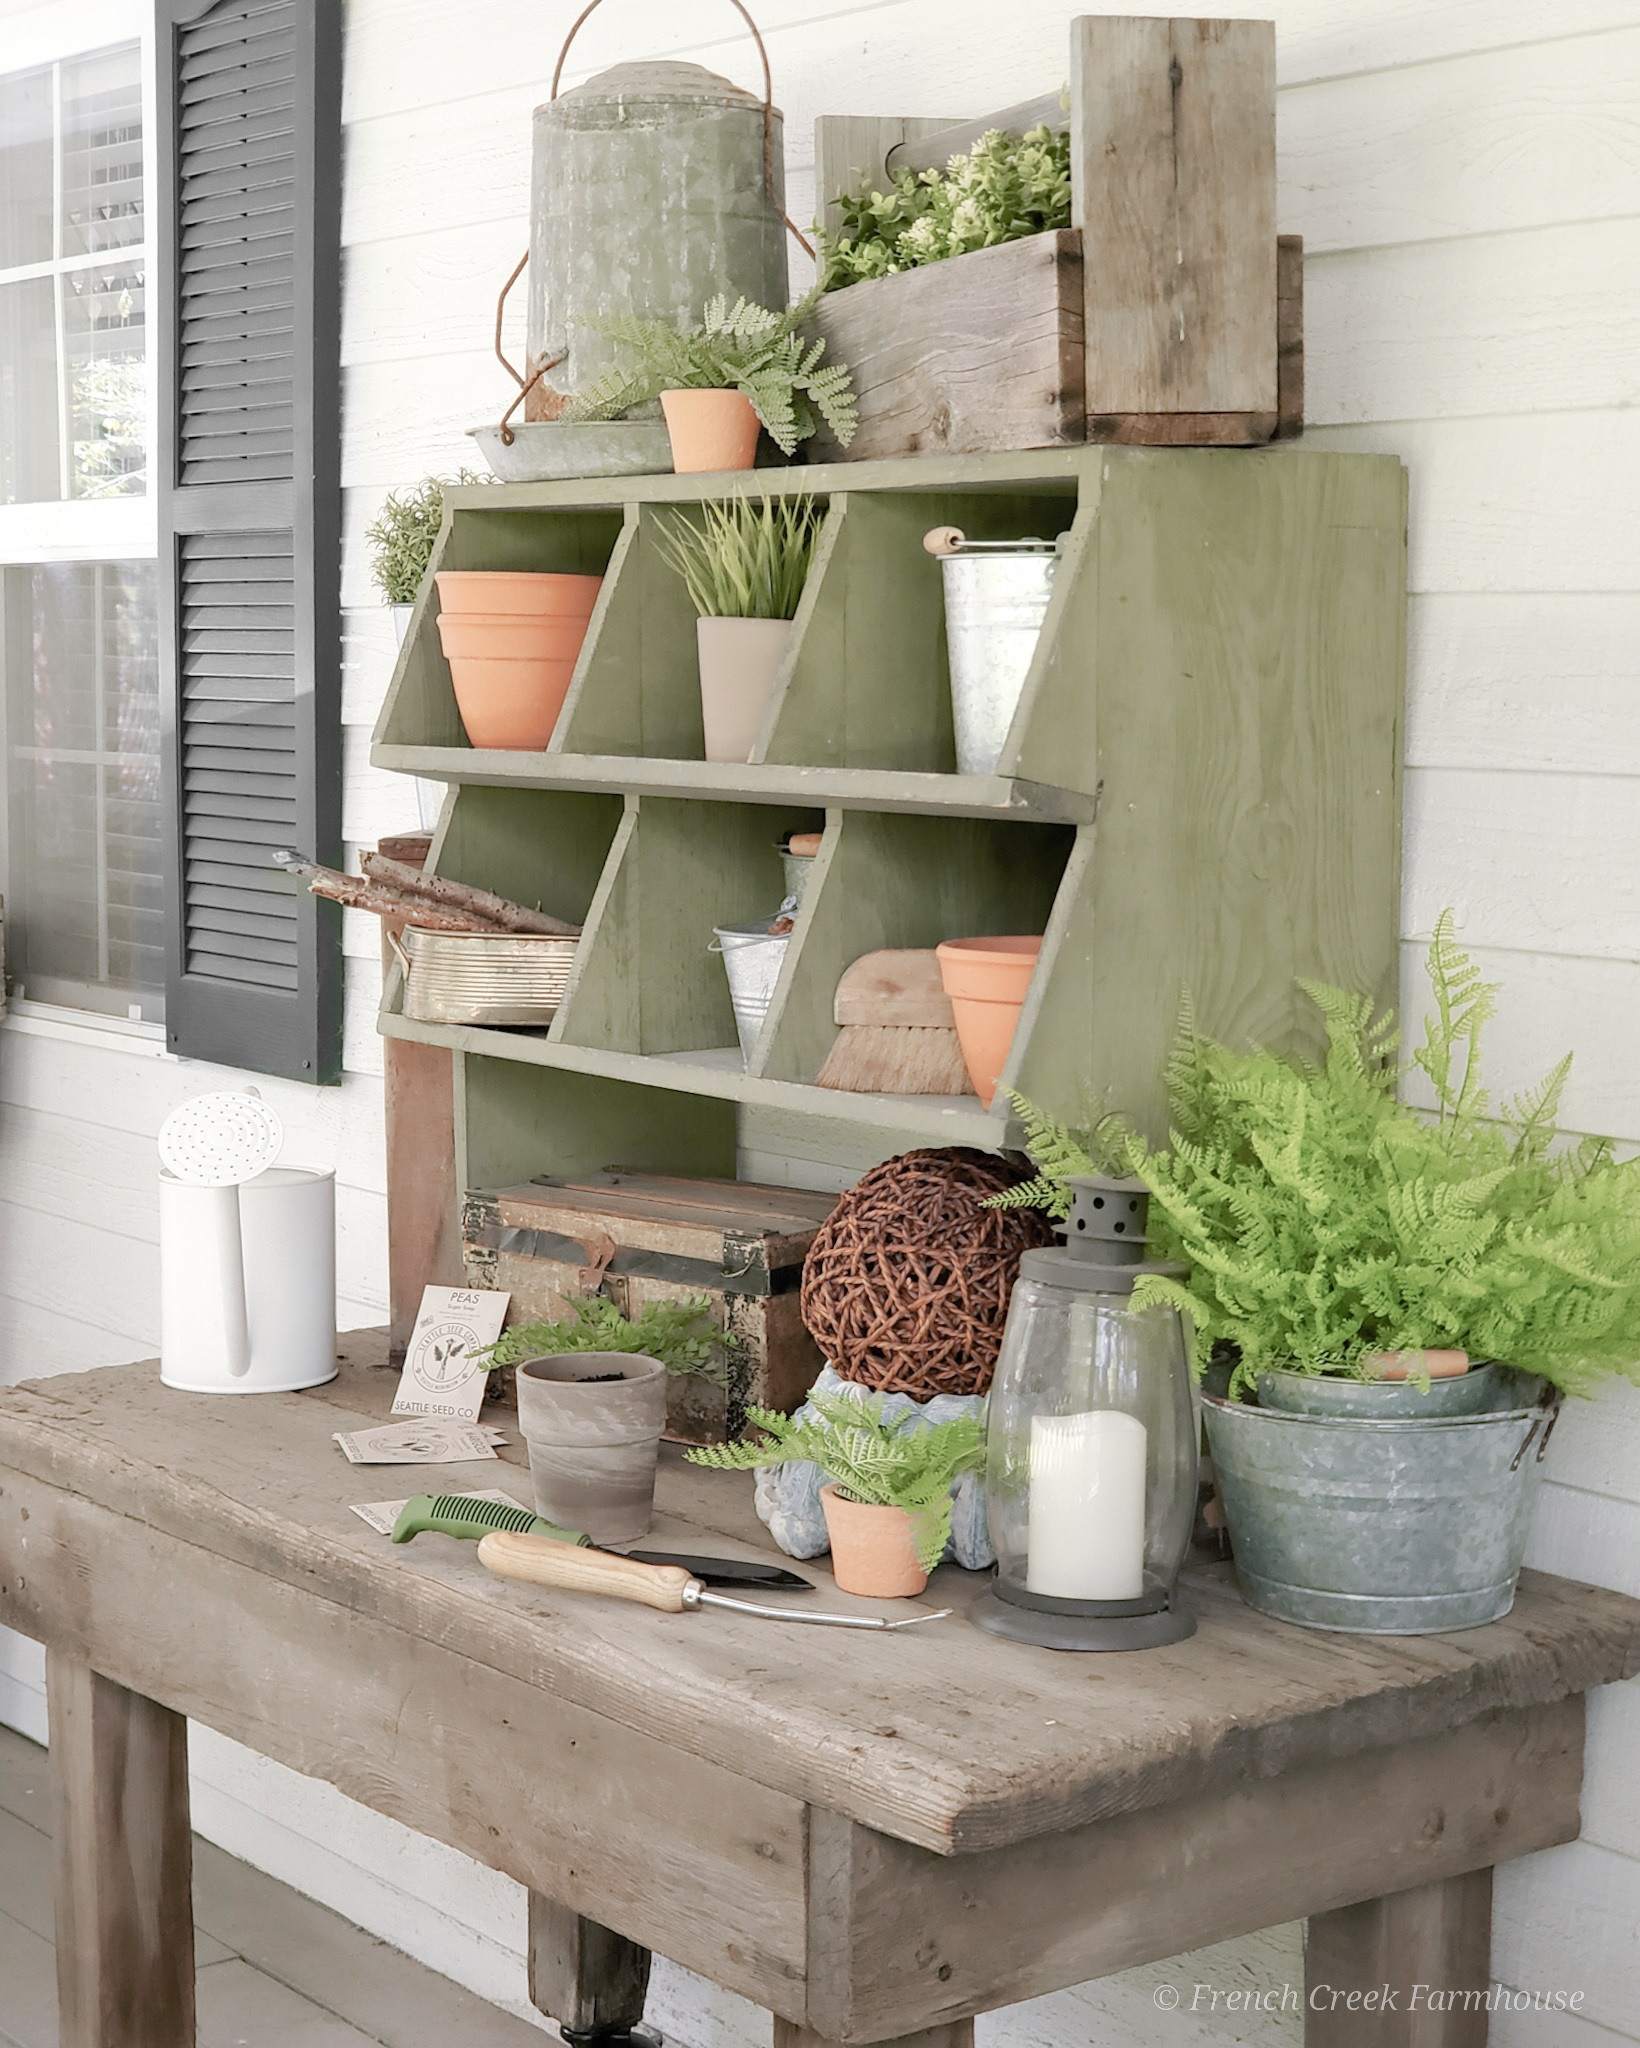 Our potting bench ready for spring on the front porch